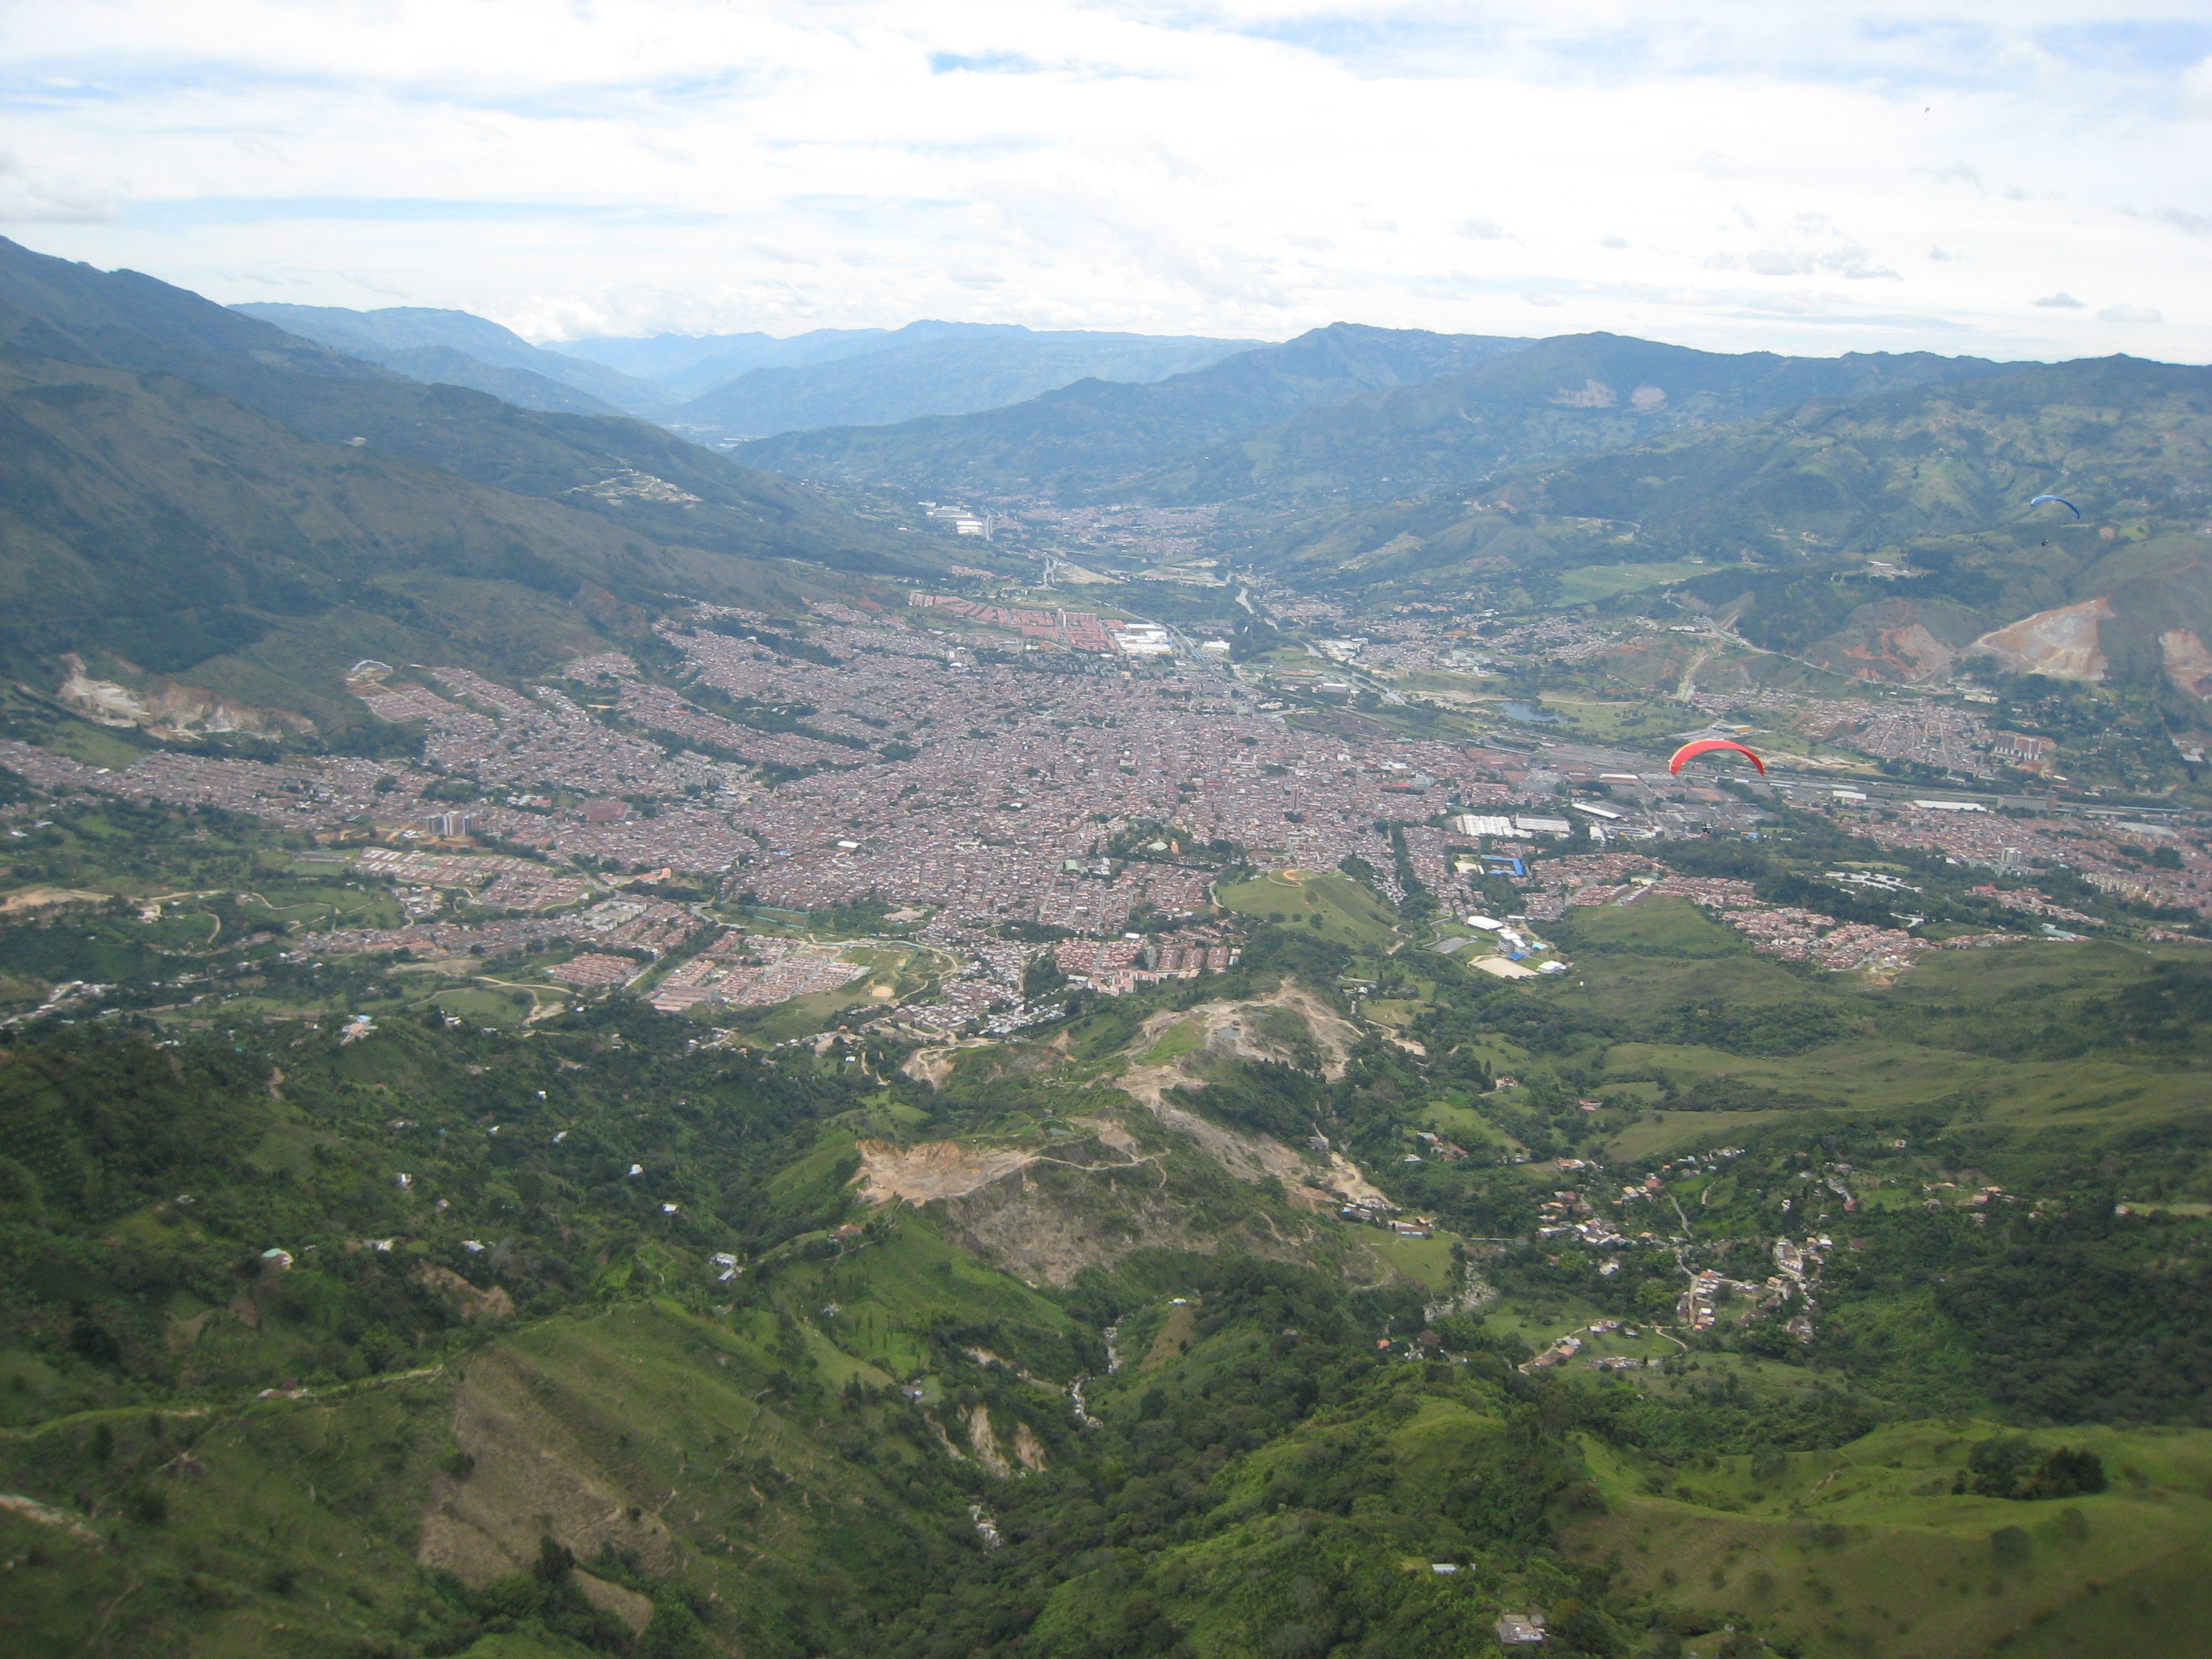 Parapente (Paragliding) in San Felix, Colombia | Mike Down South